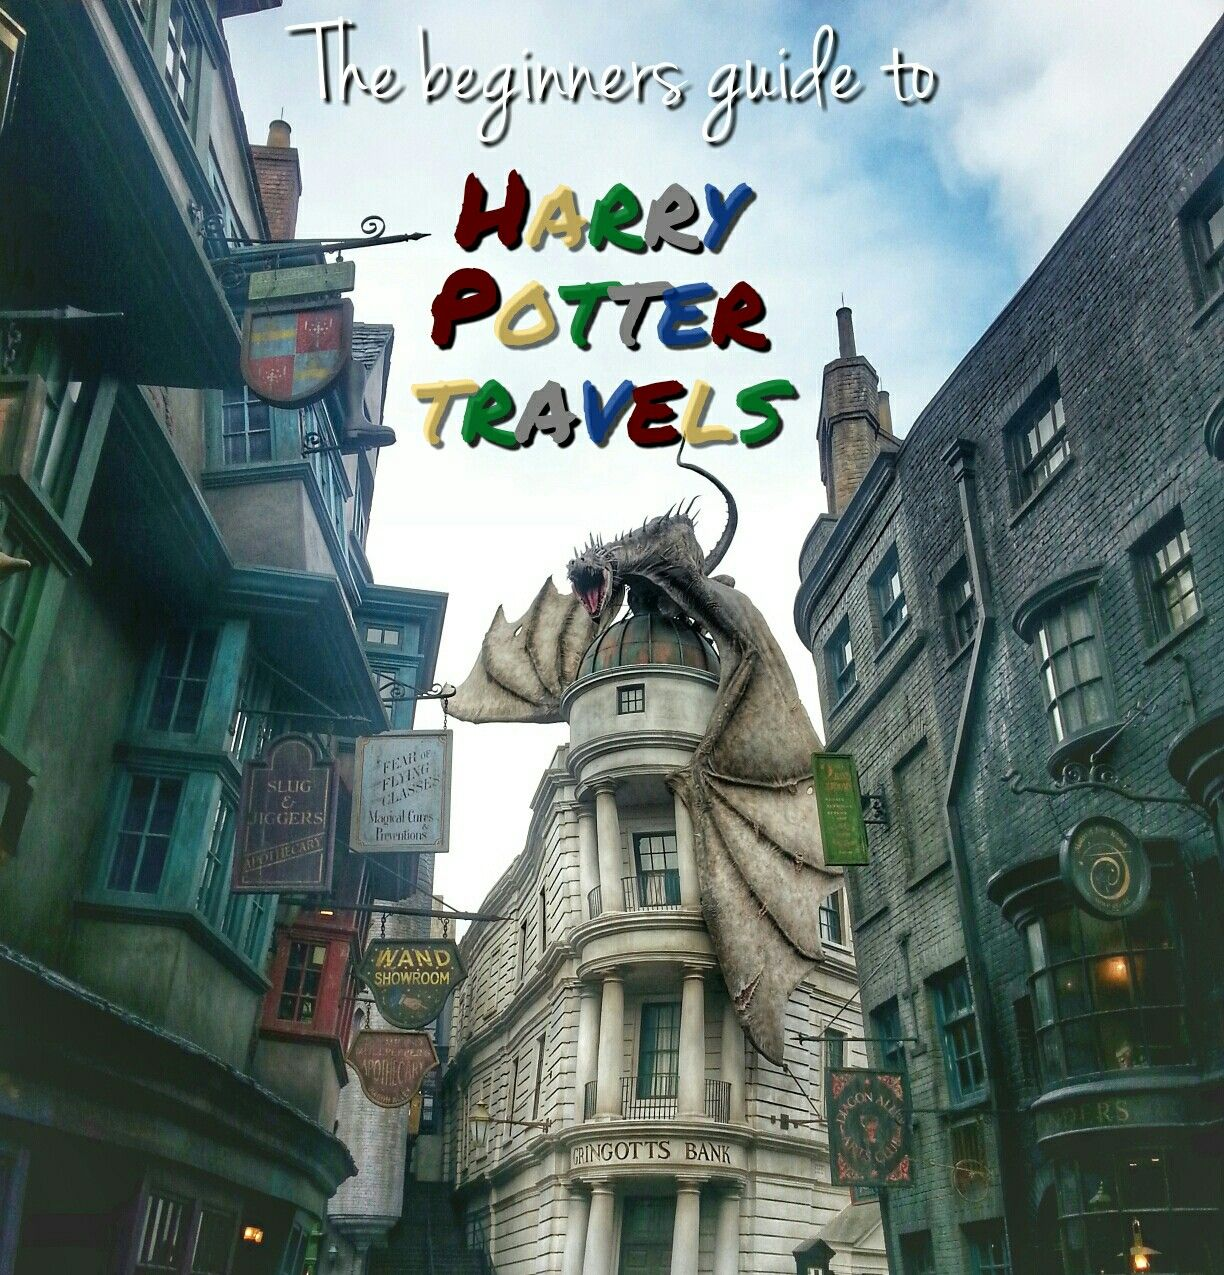 You're a wizard Harry! The beginners guide to Harry Potter travels.